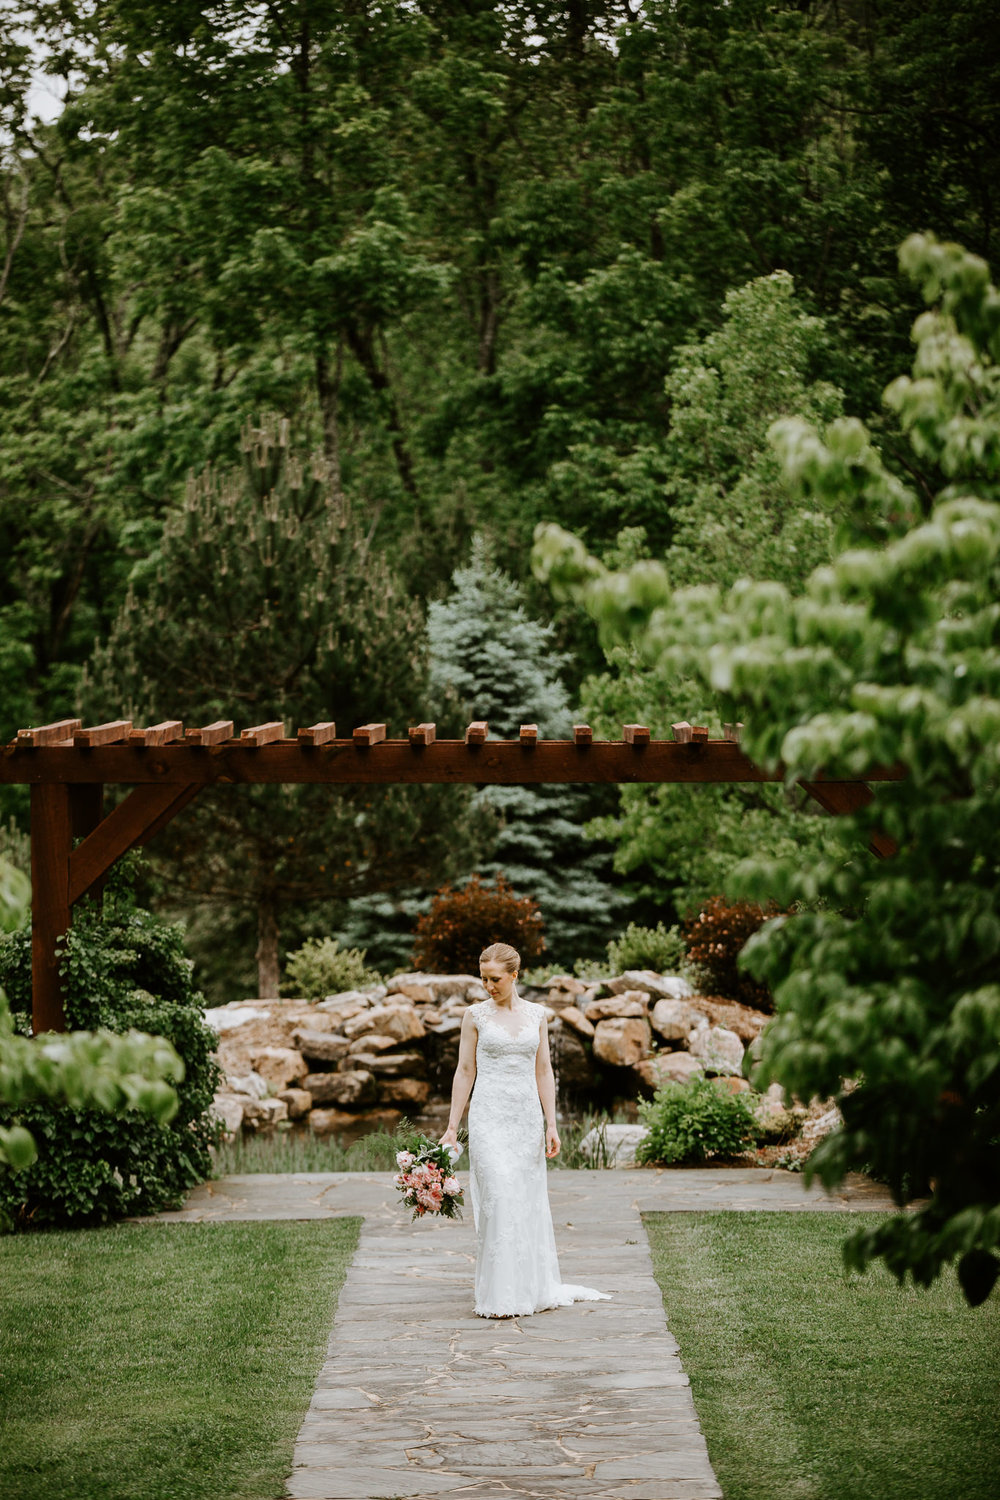 House Mountain Inn - Weddings - Lexington - Virginia - Best Wedding Photographer - Pat Cori Photography-45.jpg